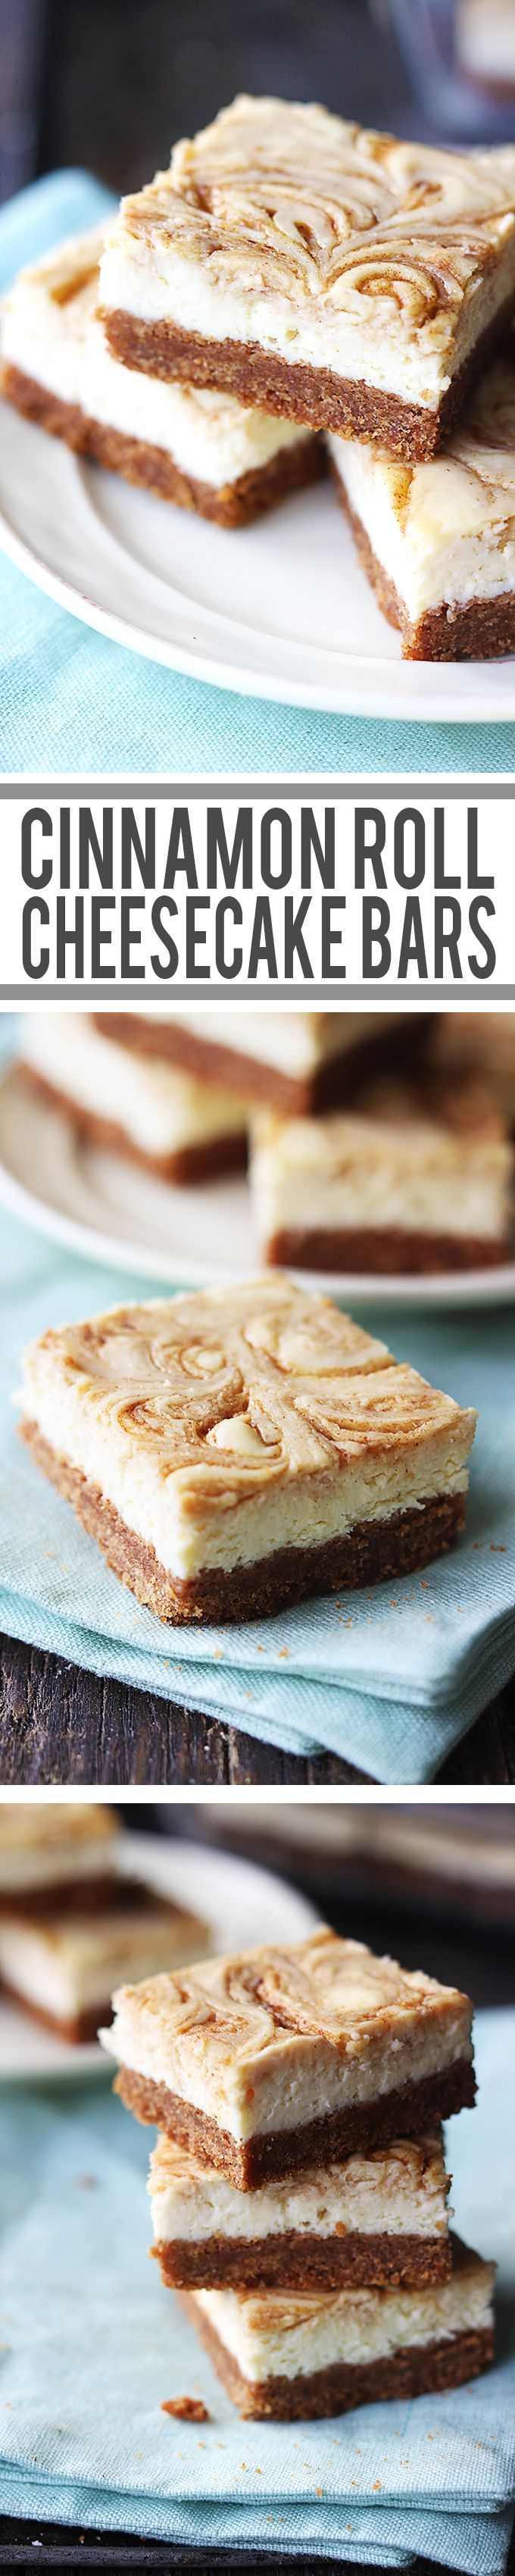 Cinnamon Roll Cheesecake Bars -   New York-style cheesecake bars with a  thick graham cracker crust and cinnamon swirl!